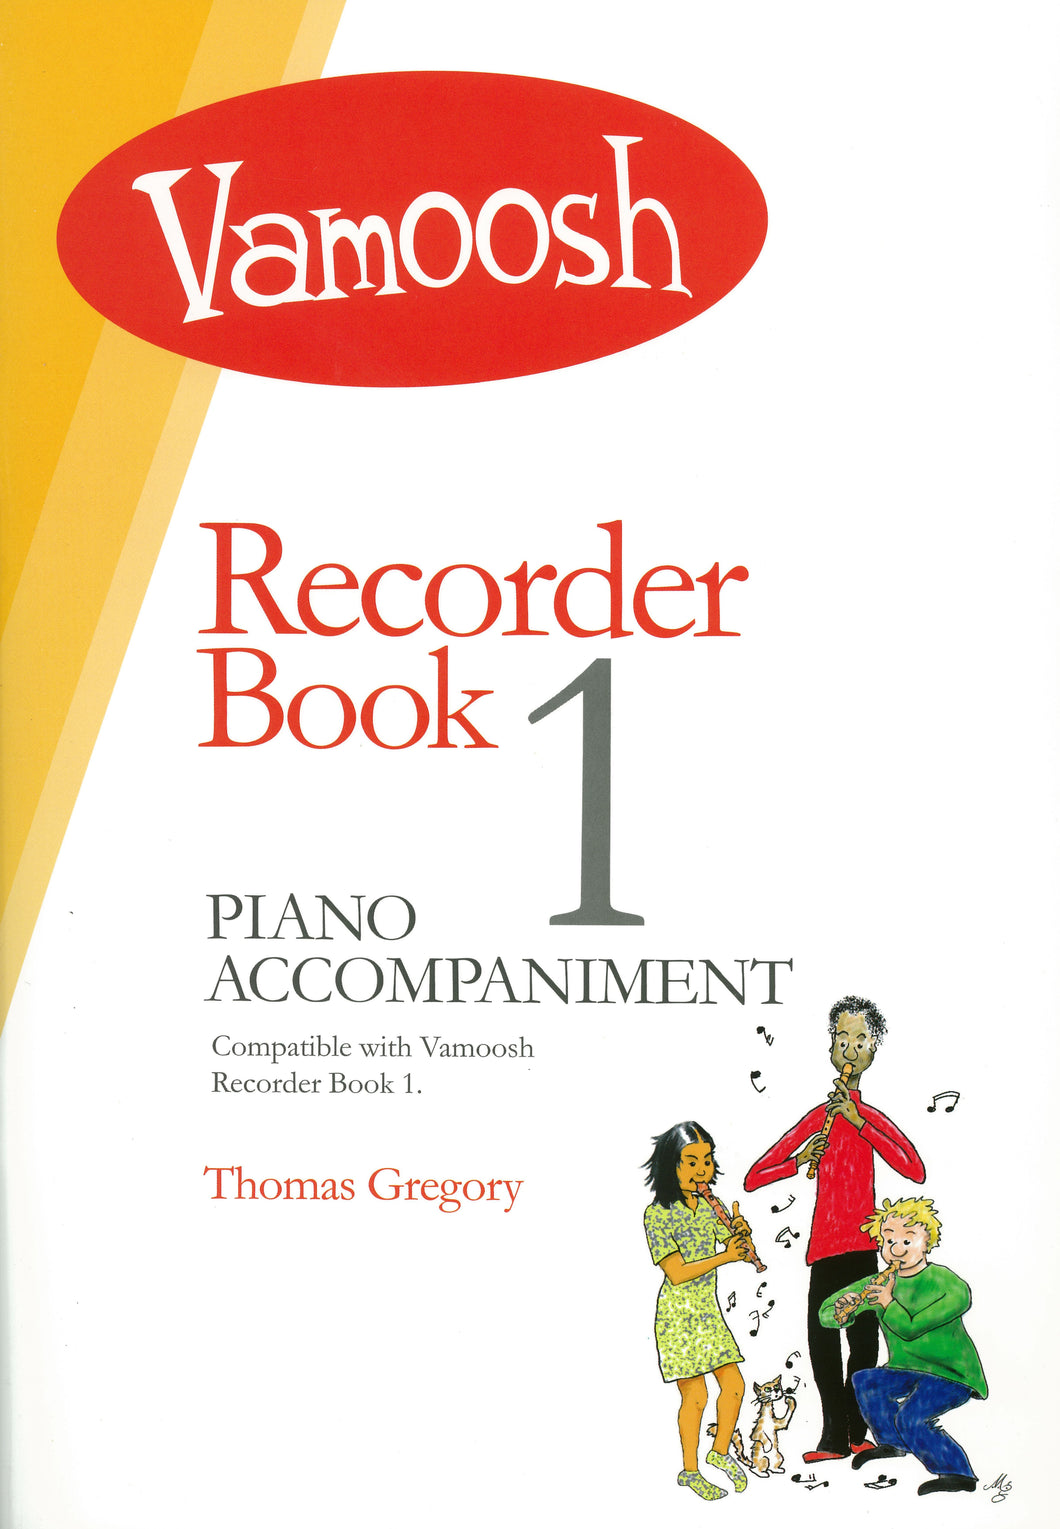 Vamoosh Recorder Book 1 Piano Accompaniment